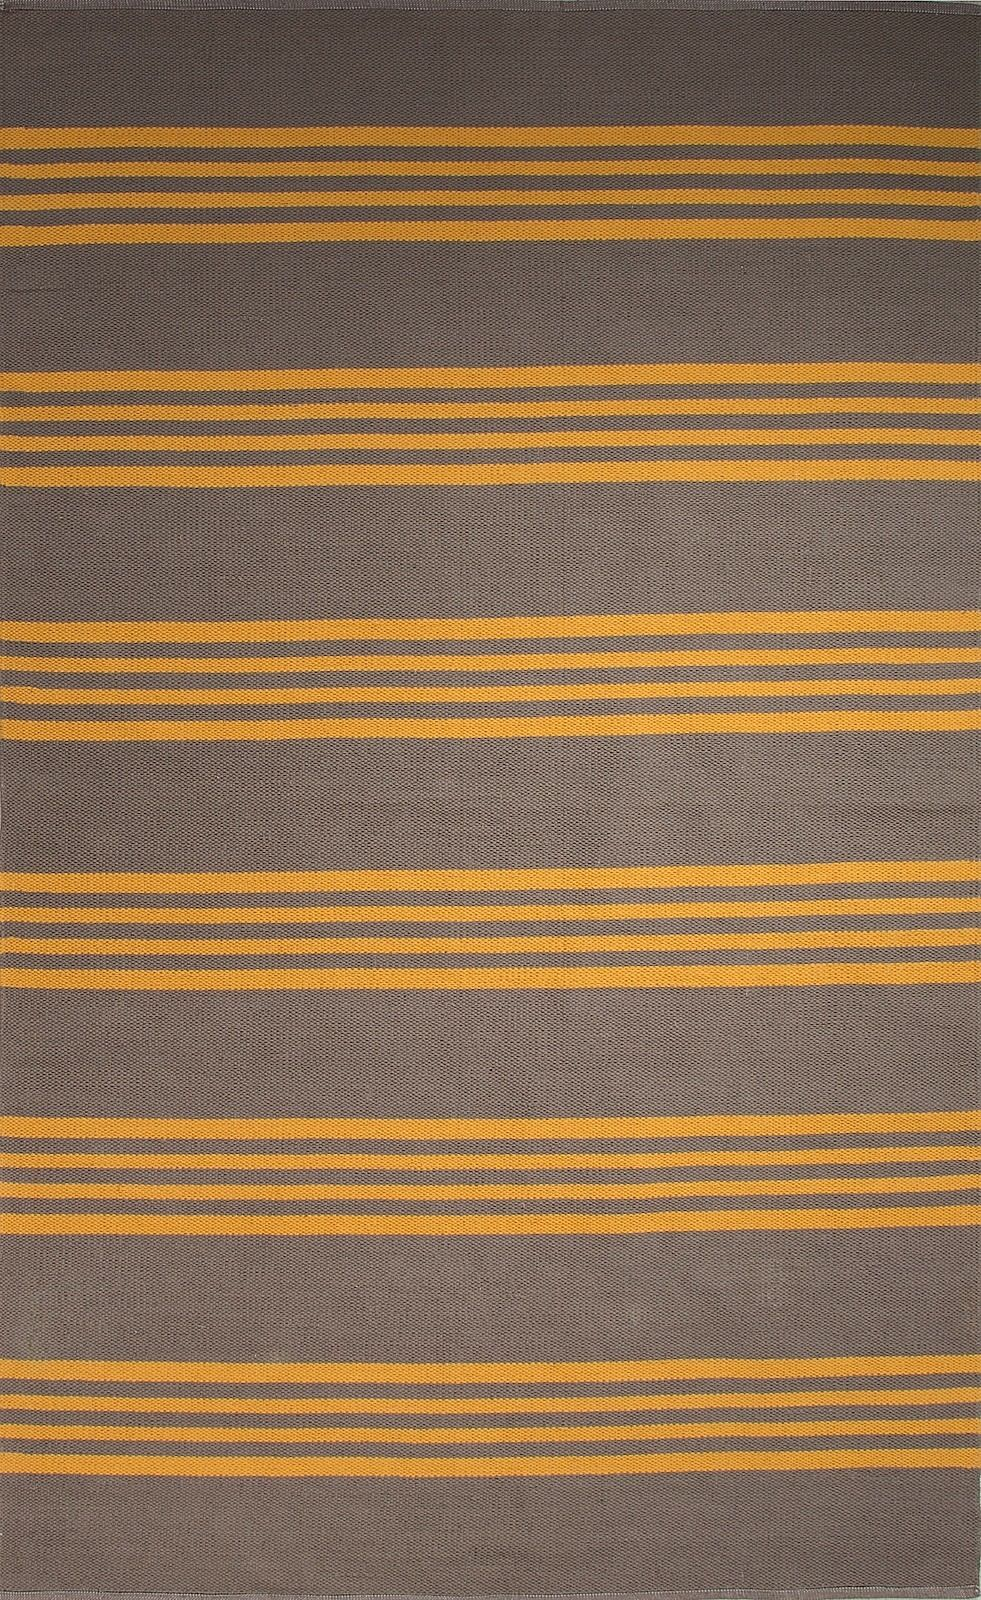 jaipur sonoma solid/striped area rug collection